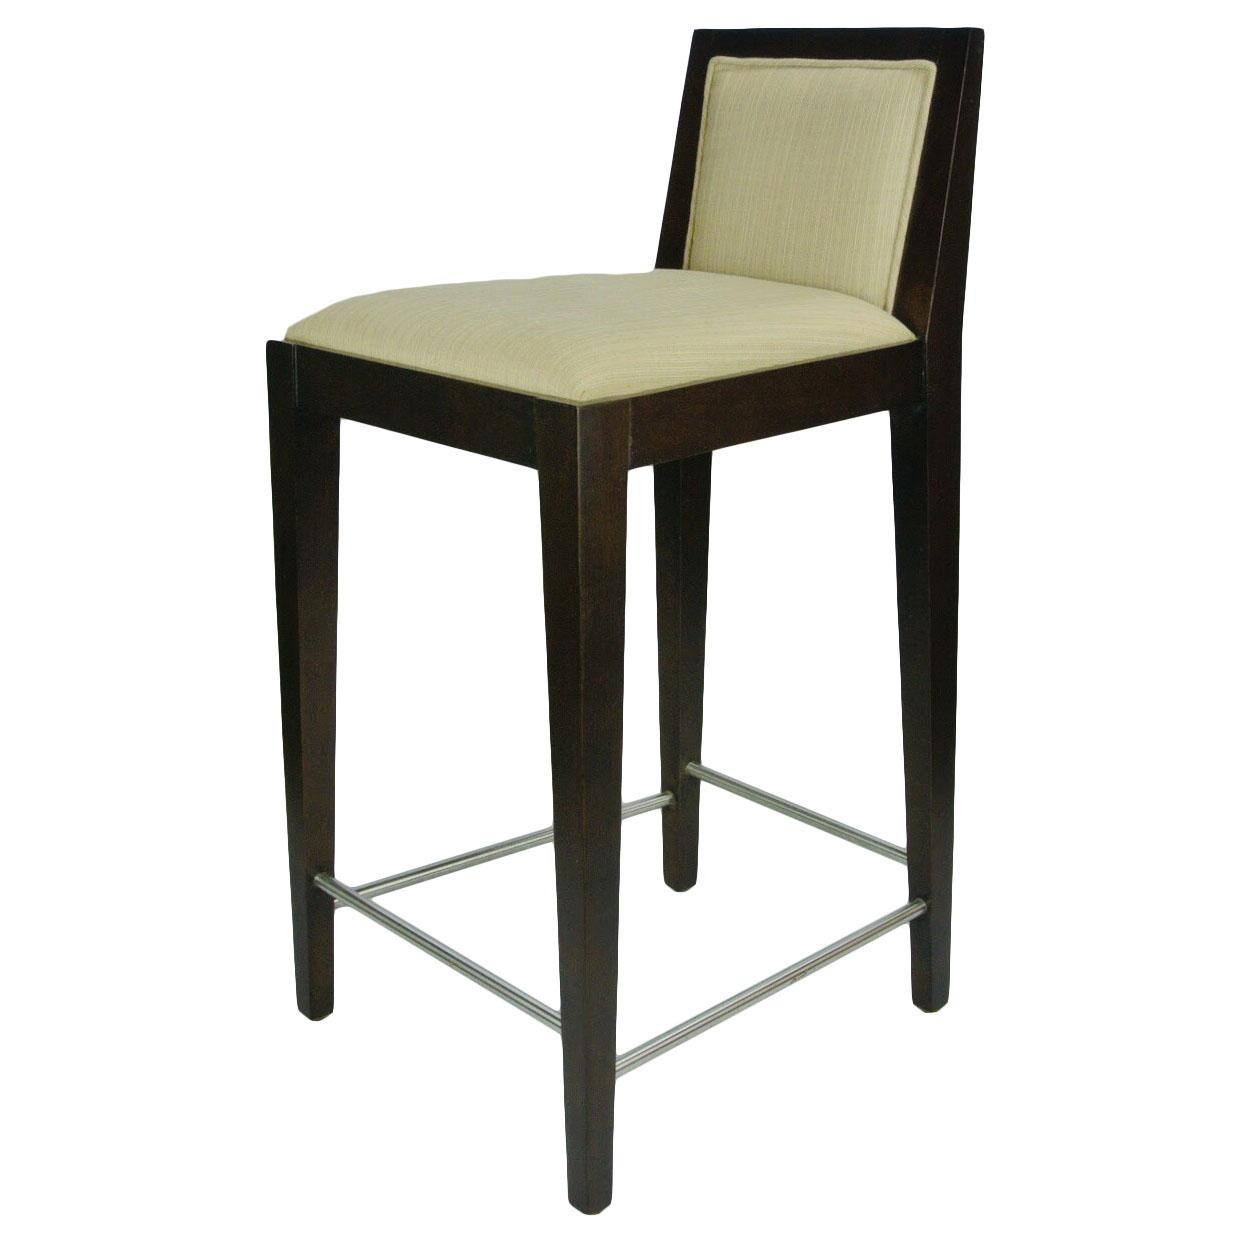 Solid Wood Bar Stool, Fabric Upholstery (Brand New)